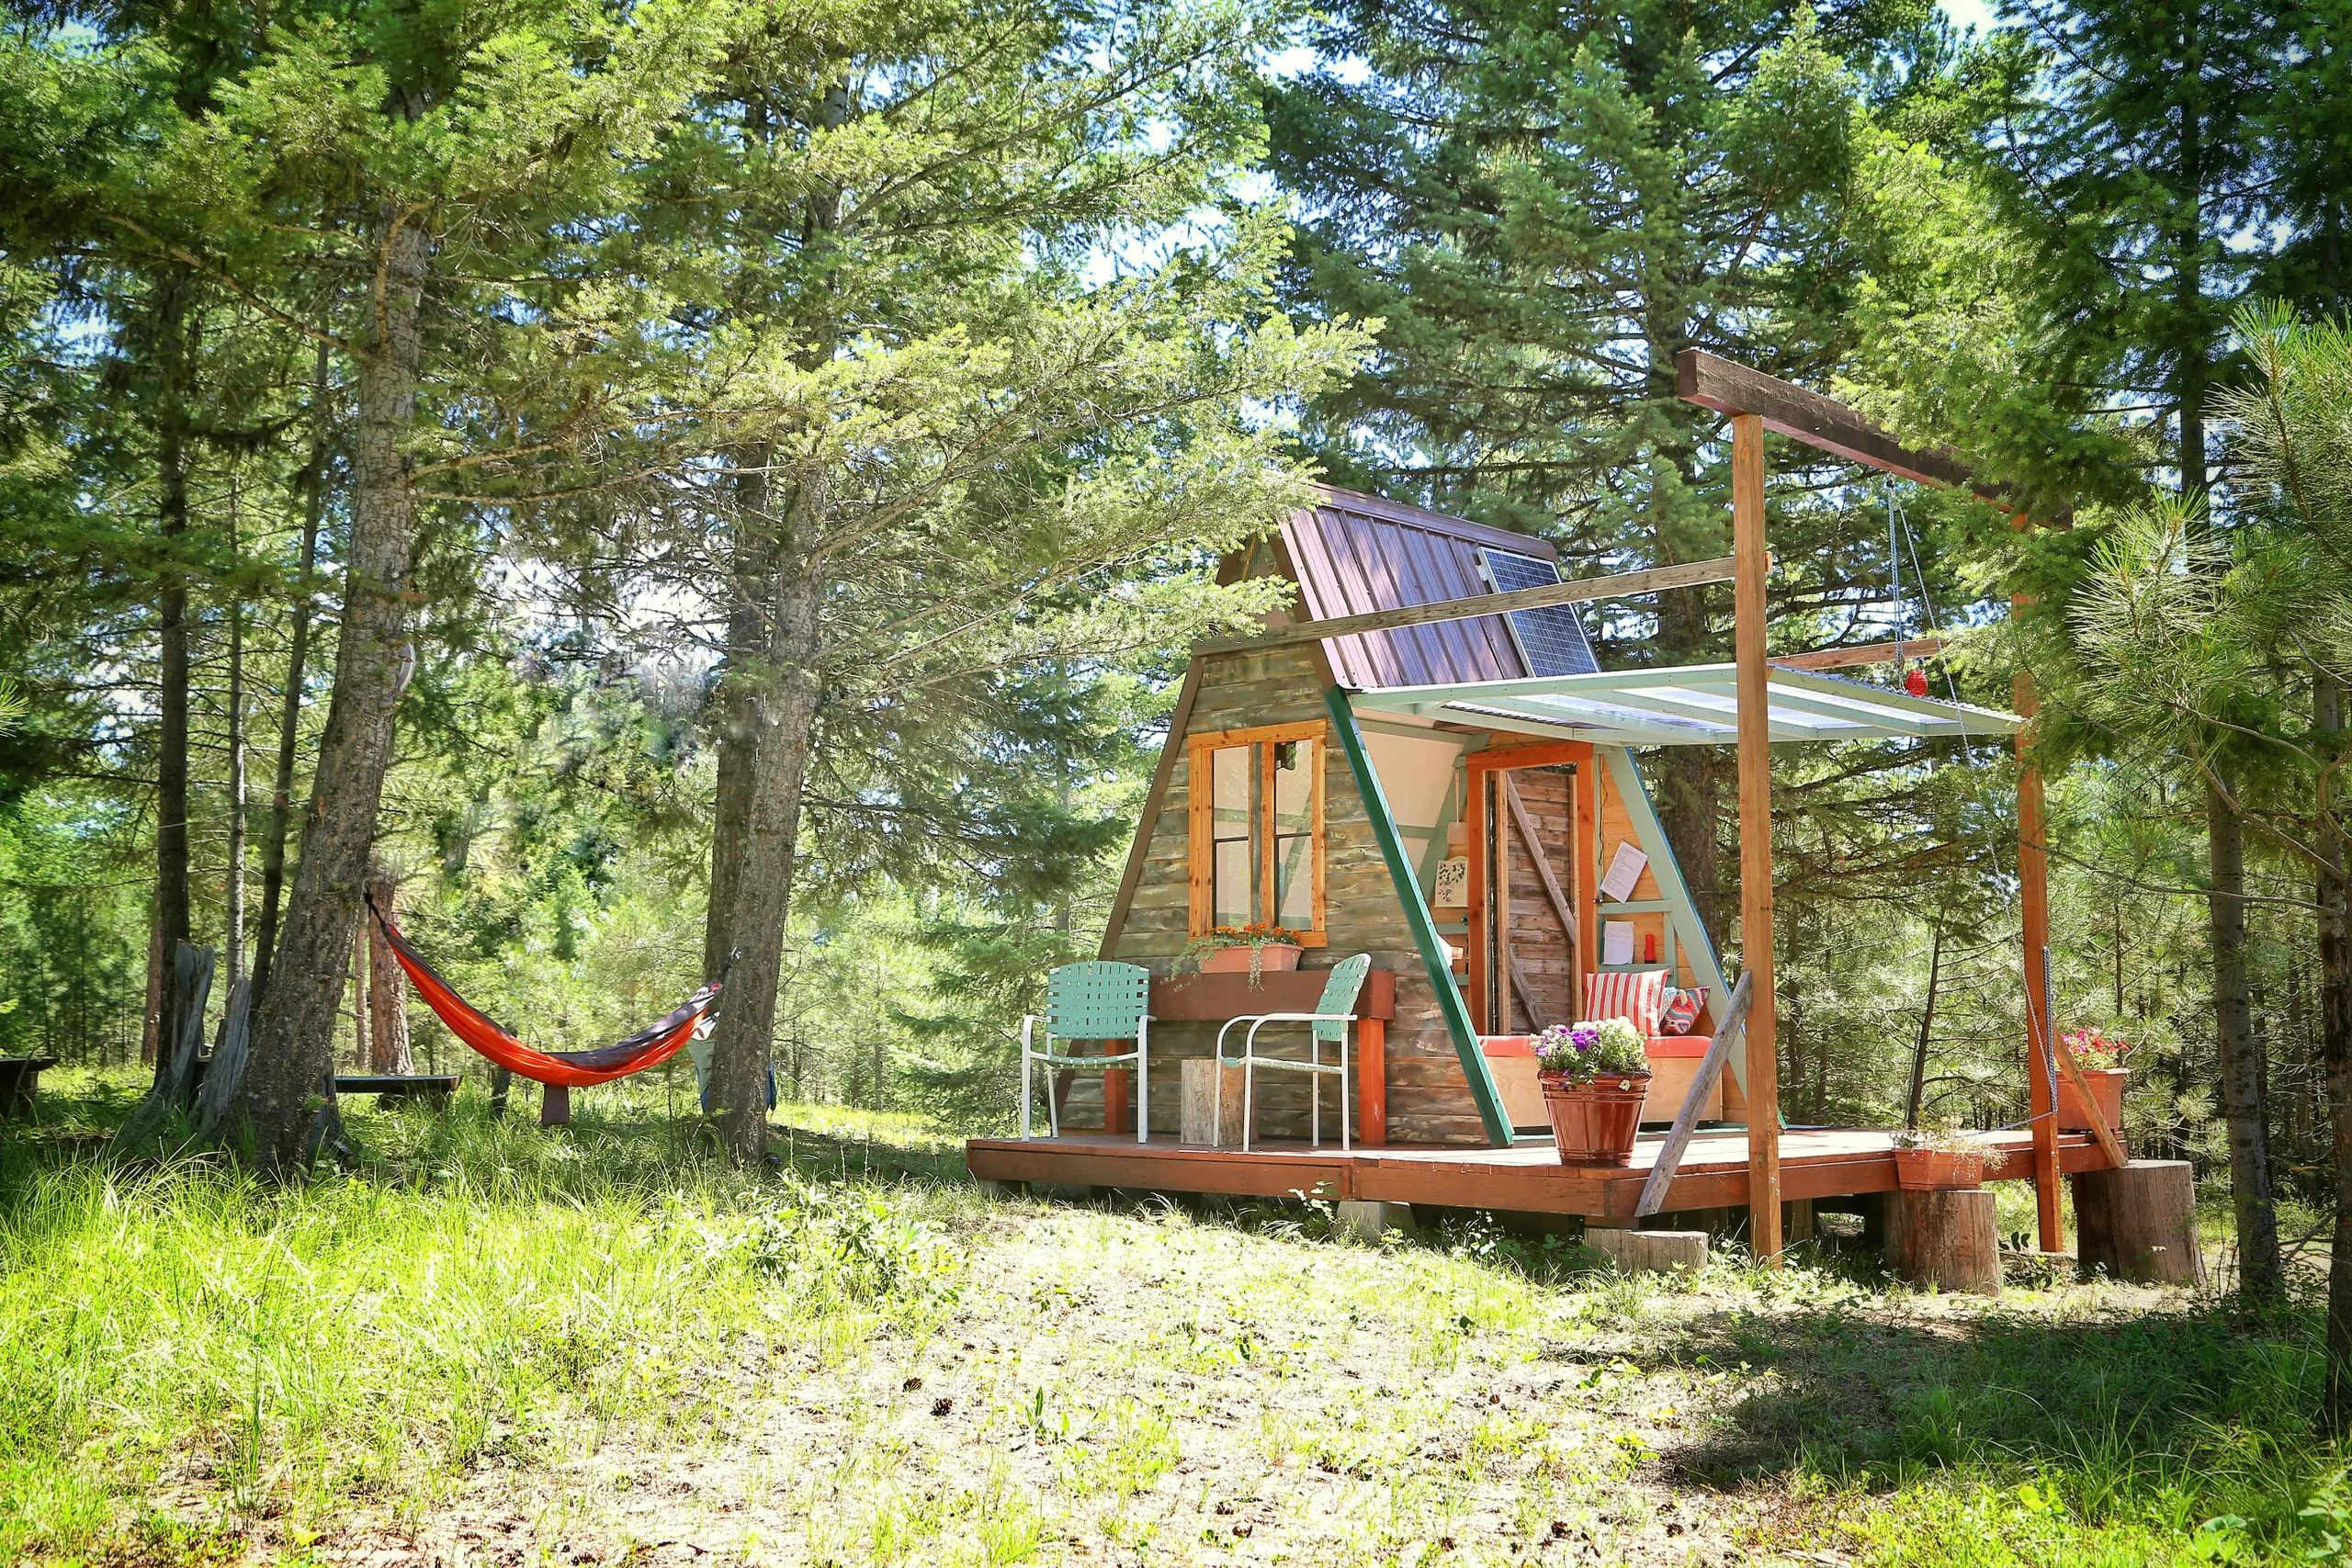 Slide 9 of 15: Both a tiny home and an A-frame, this quirky, rustic cabin is a glamping destination. It's nestled between Glacier and Yellowstone national parks in Montana, and wild elk sightings are not unheard of. Relax in the hot tub or take a fully solar outdoor shower after a long day of exploring the 100-acre property and nearby hiking trails. $189, Airbnb. Get it now!